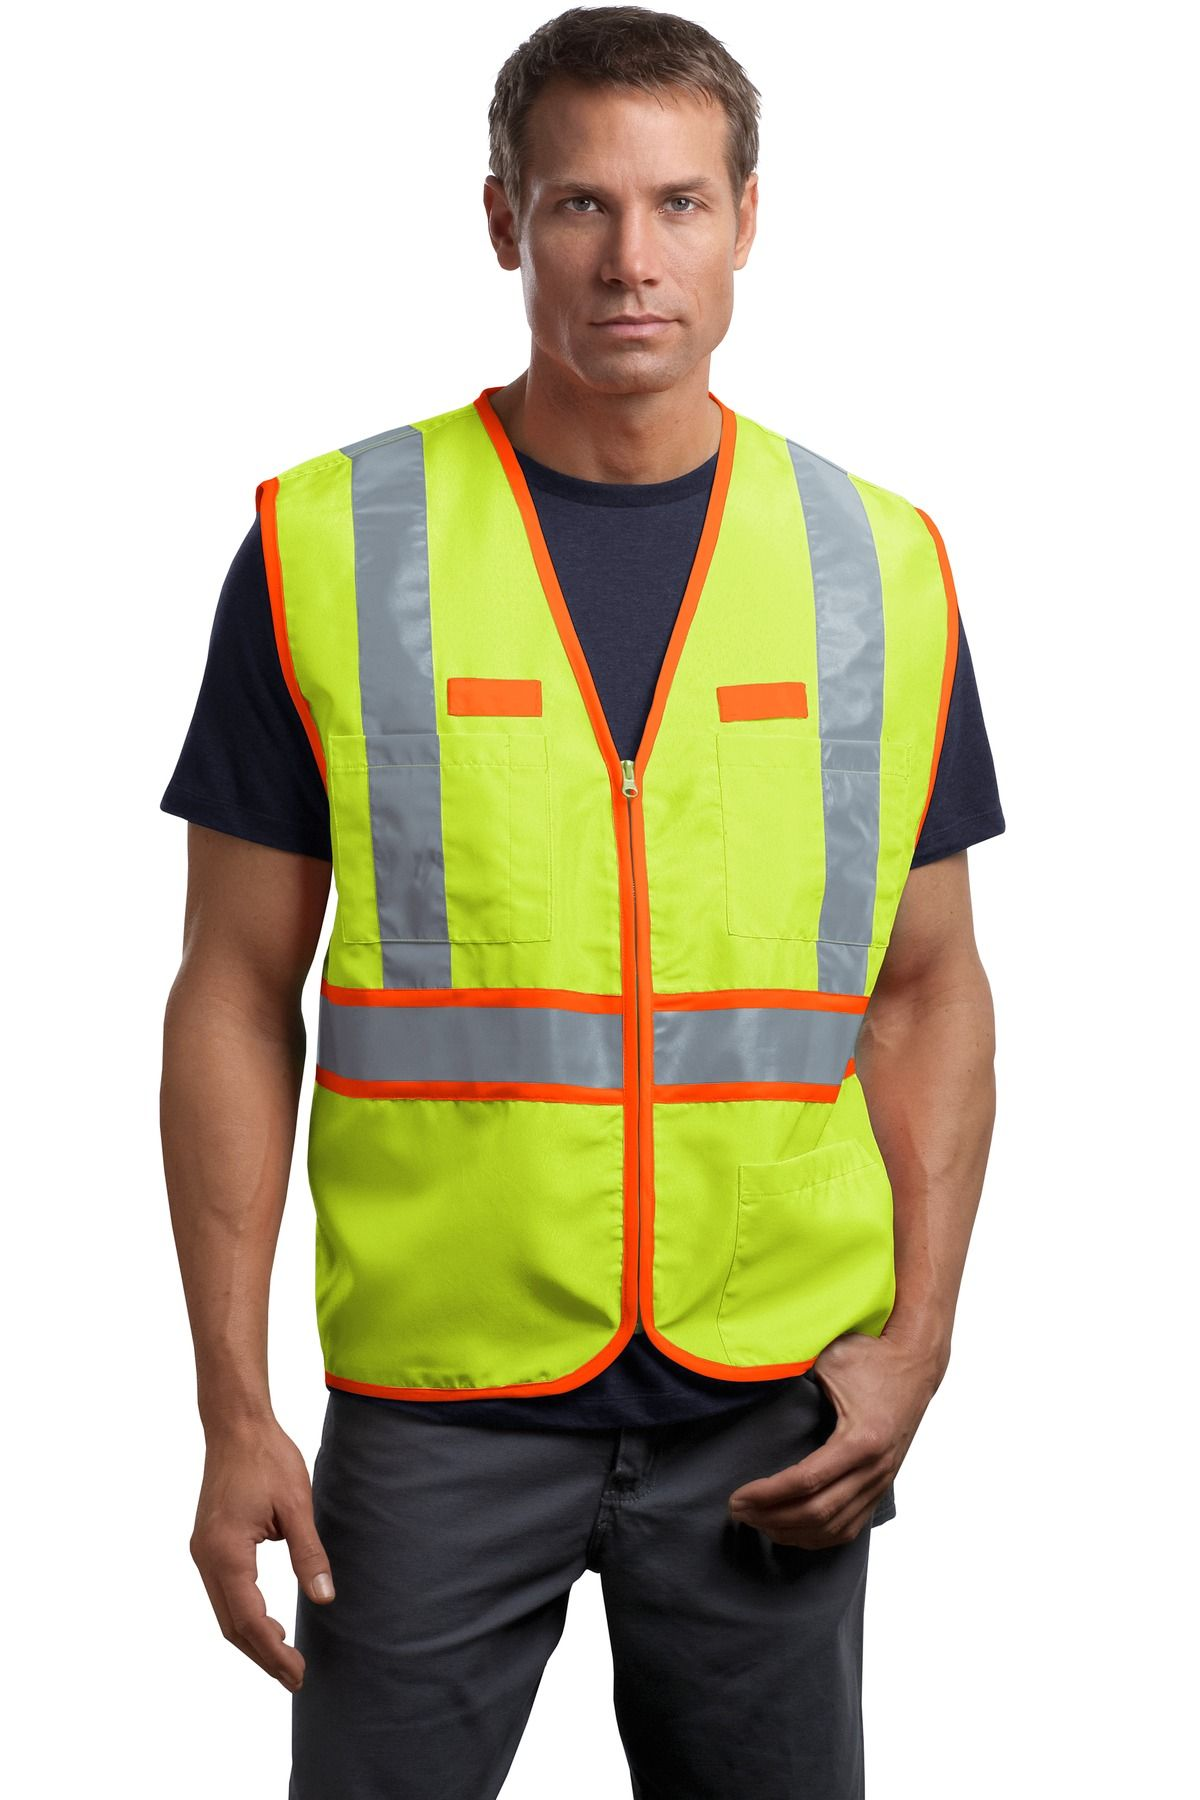 class 2 safety vest requirements